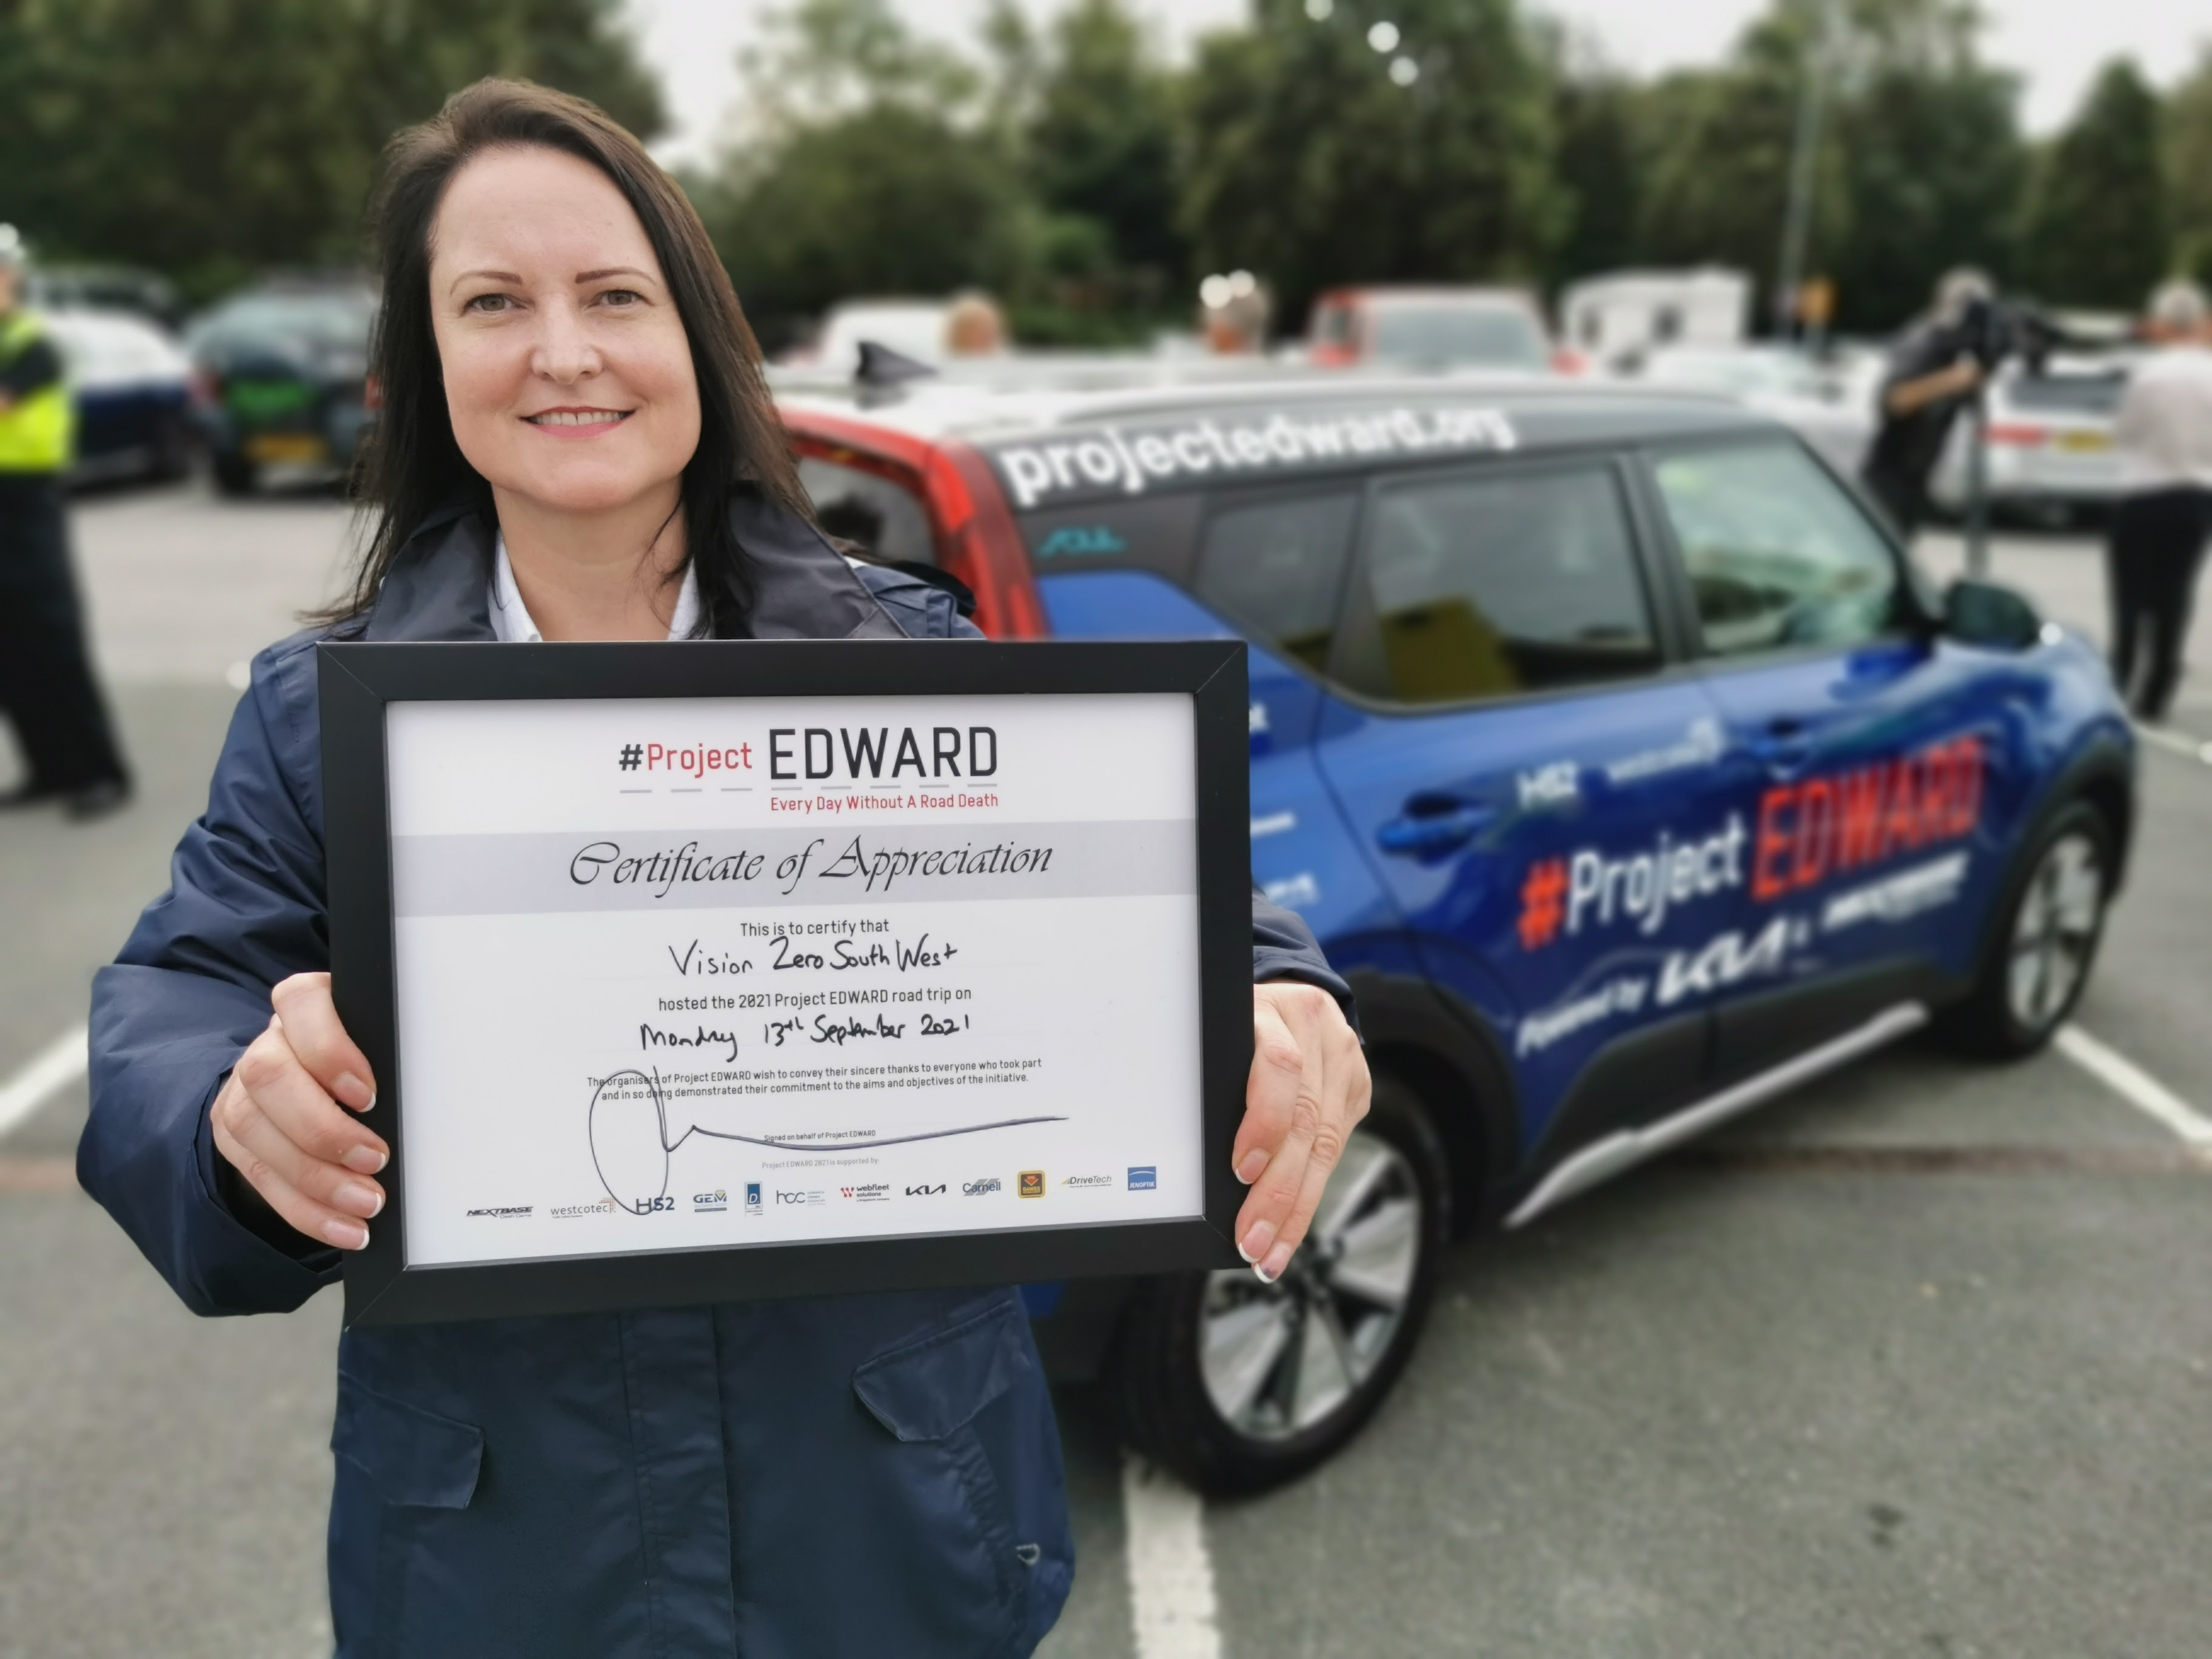 Commissioner launches national Project EDWARD road safety road trip